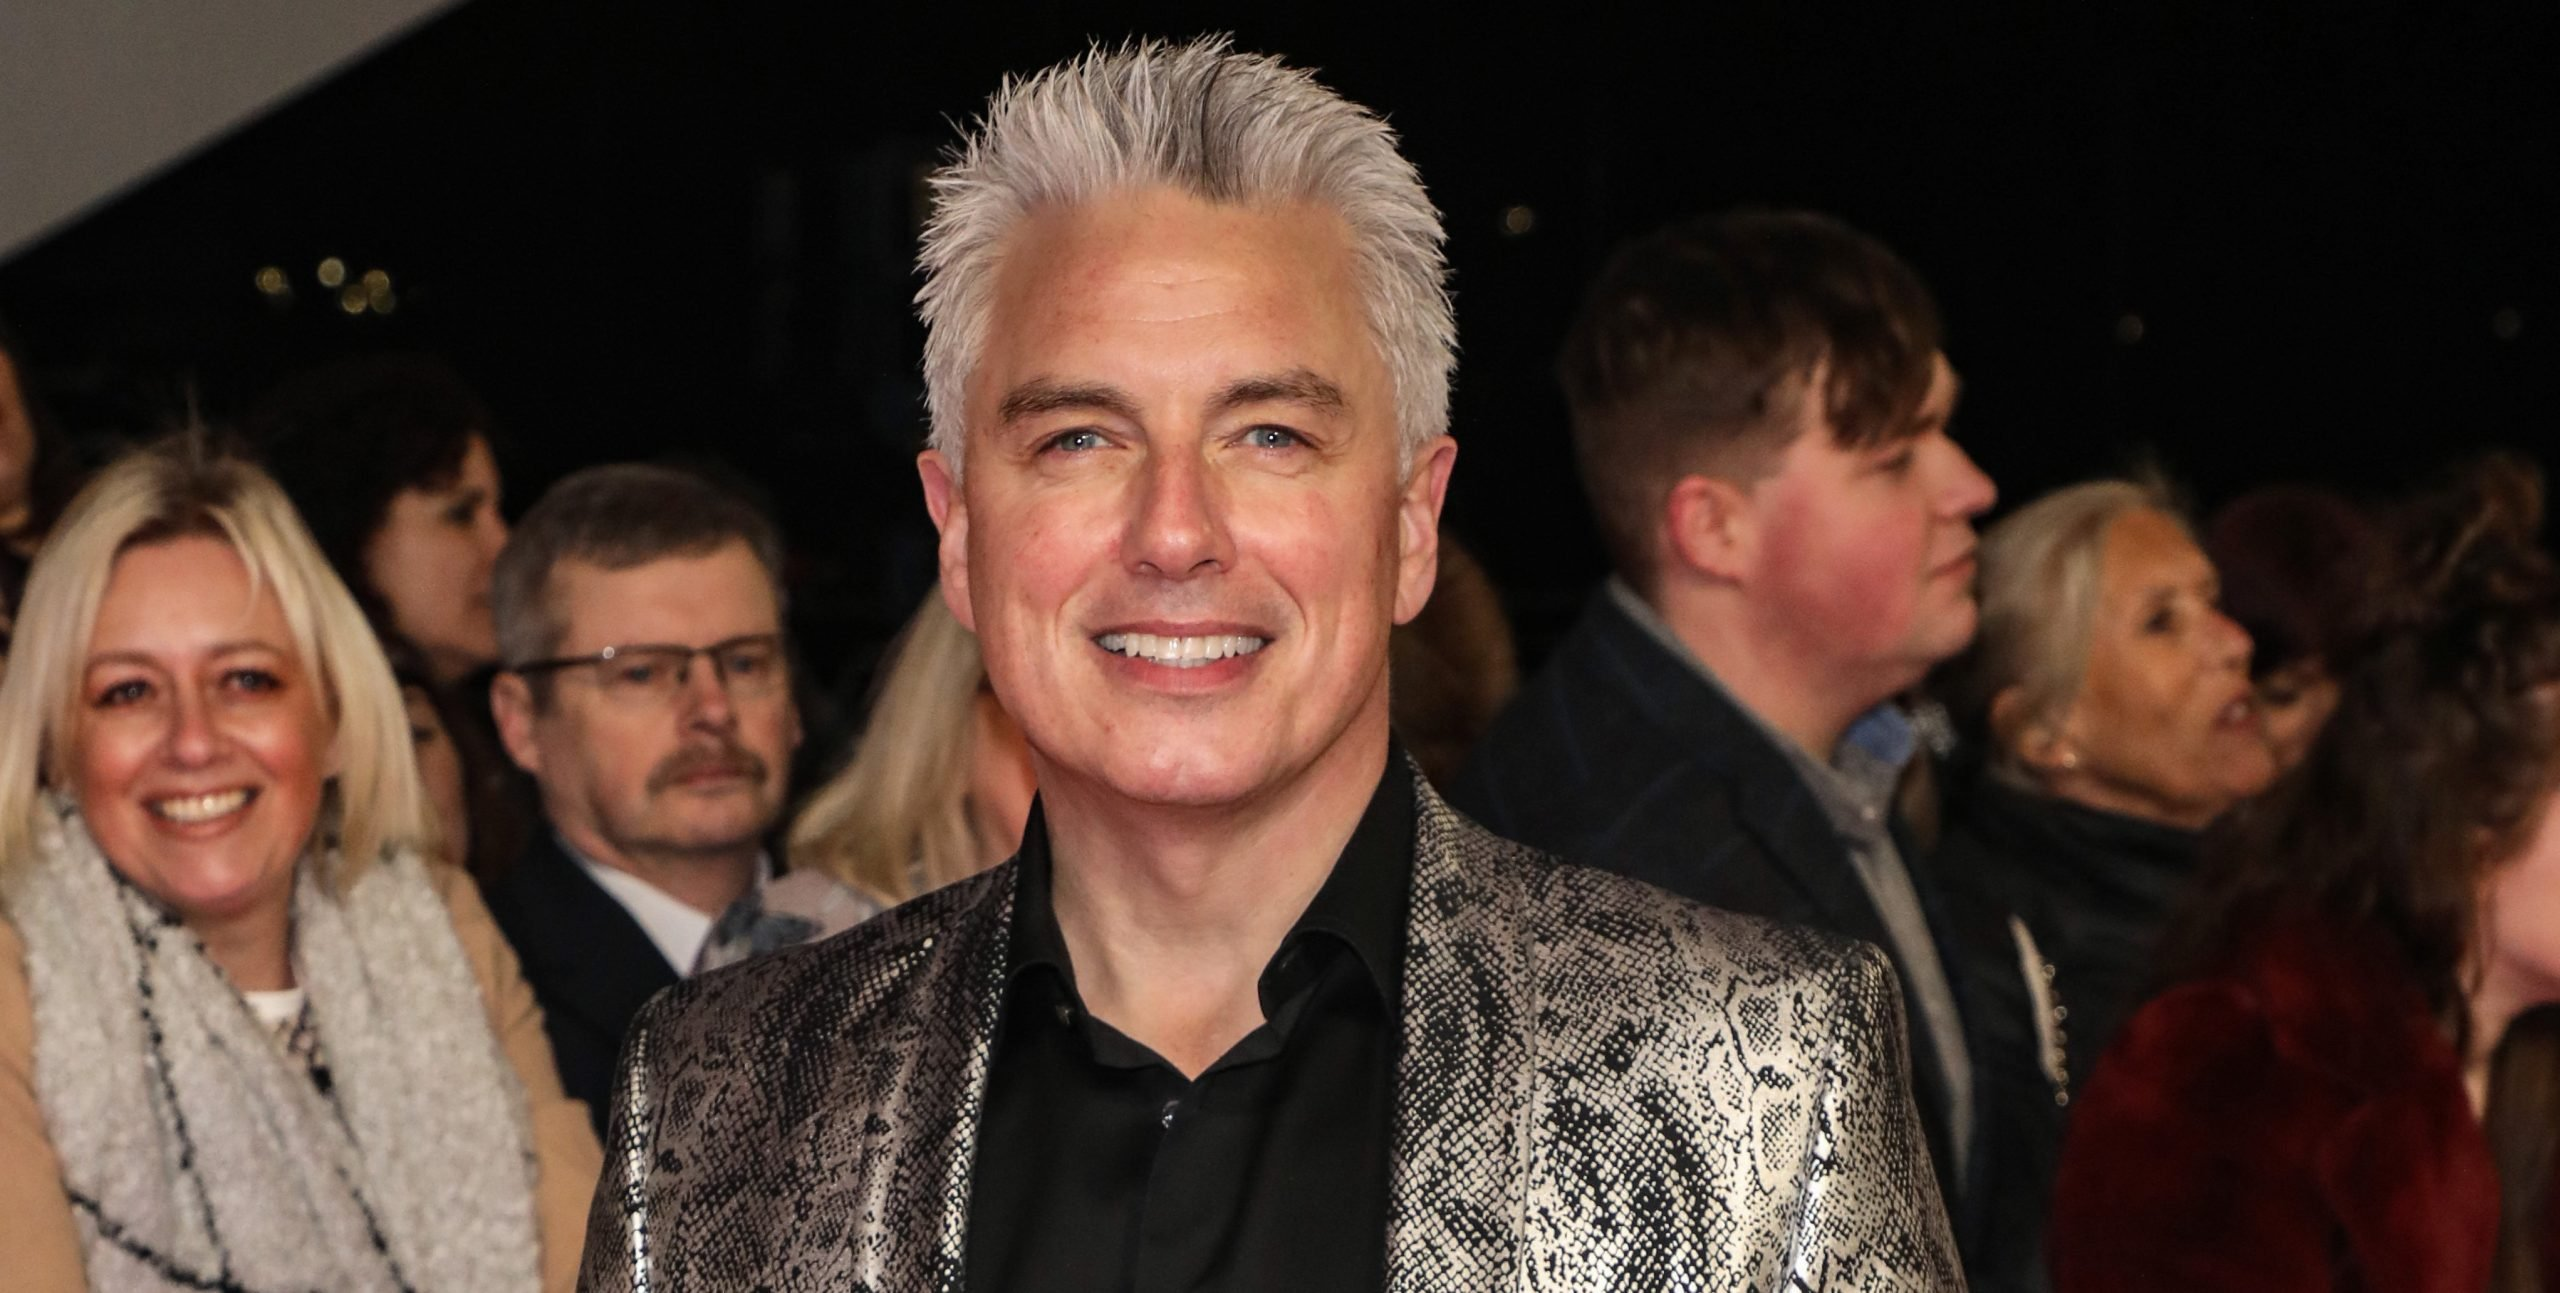 Dancing On Ice's John Barrowman wows fans with white stilettos in birthday post